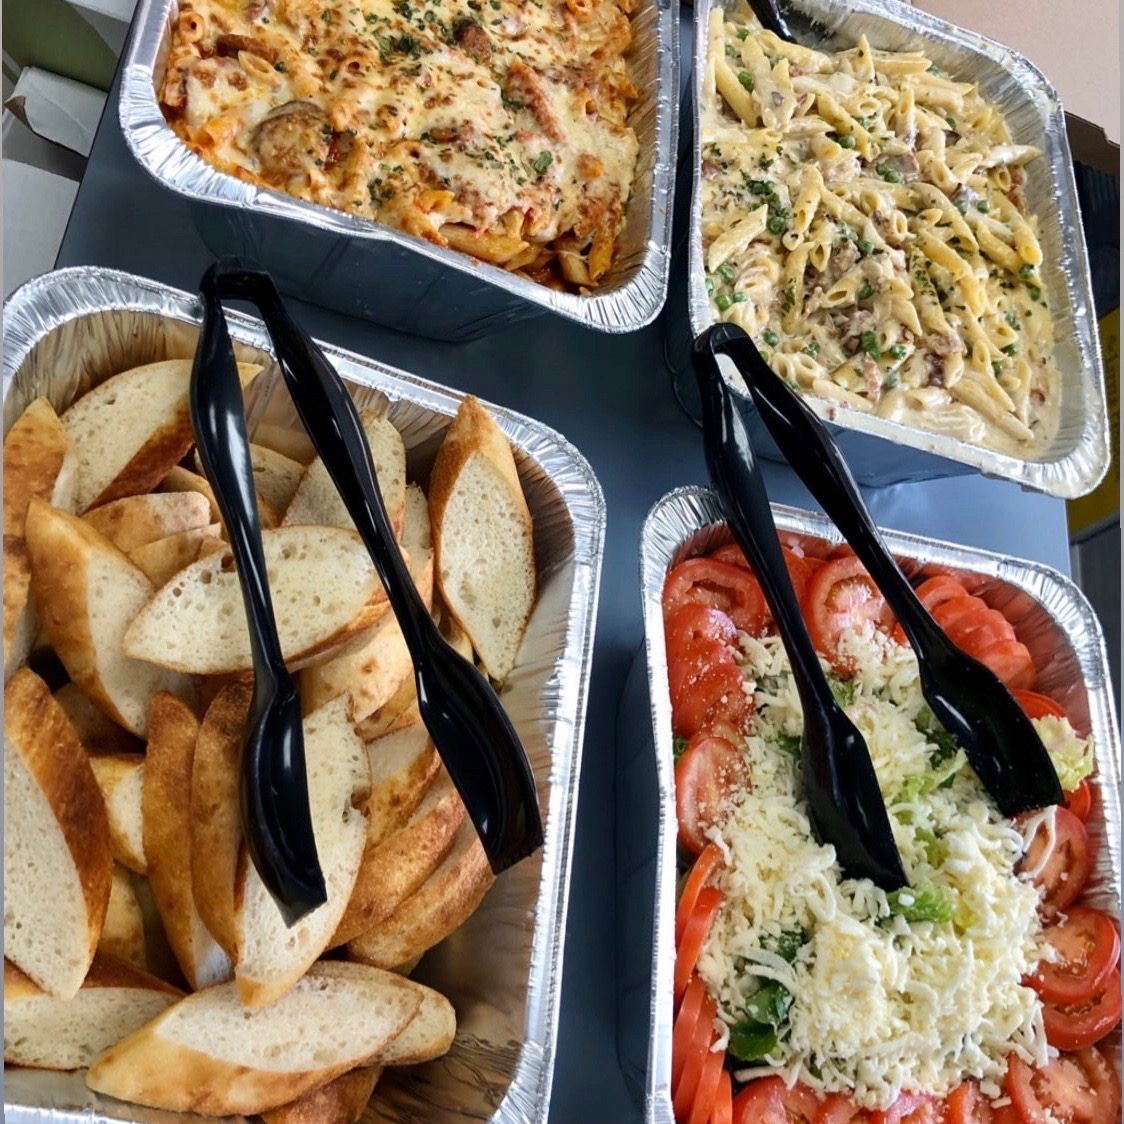 Medium & Large Trays TOGO displaying pasta, read, bruschetta and pizza.